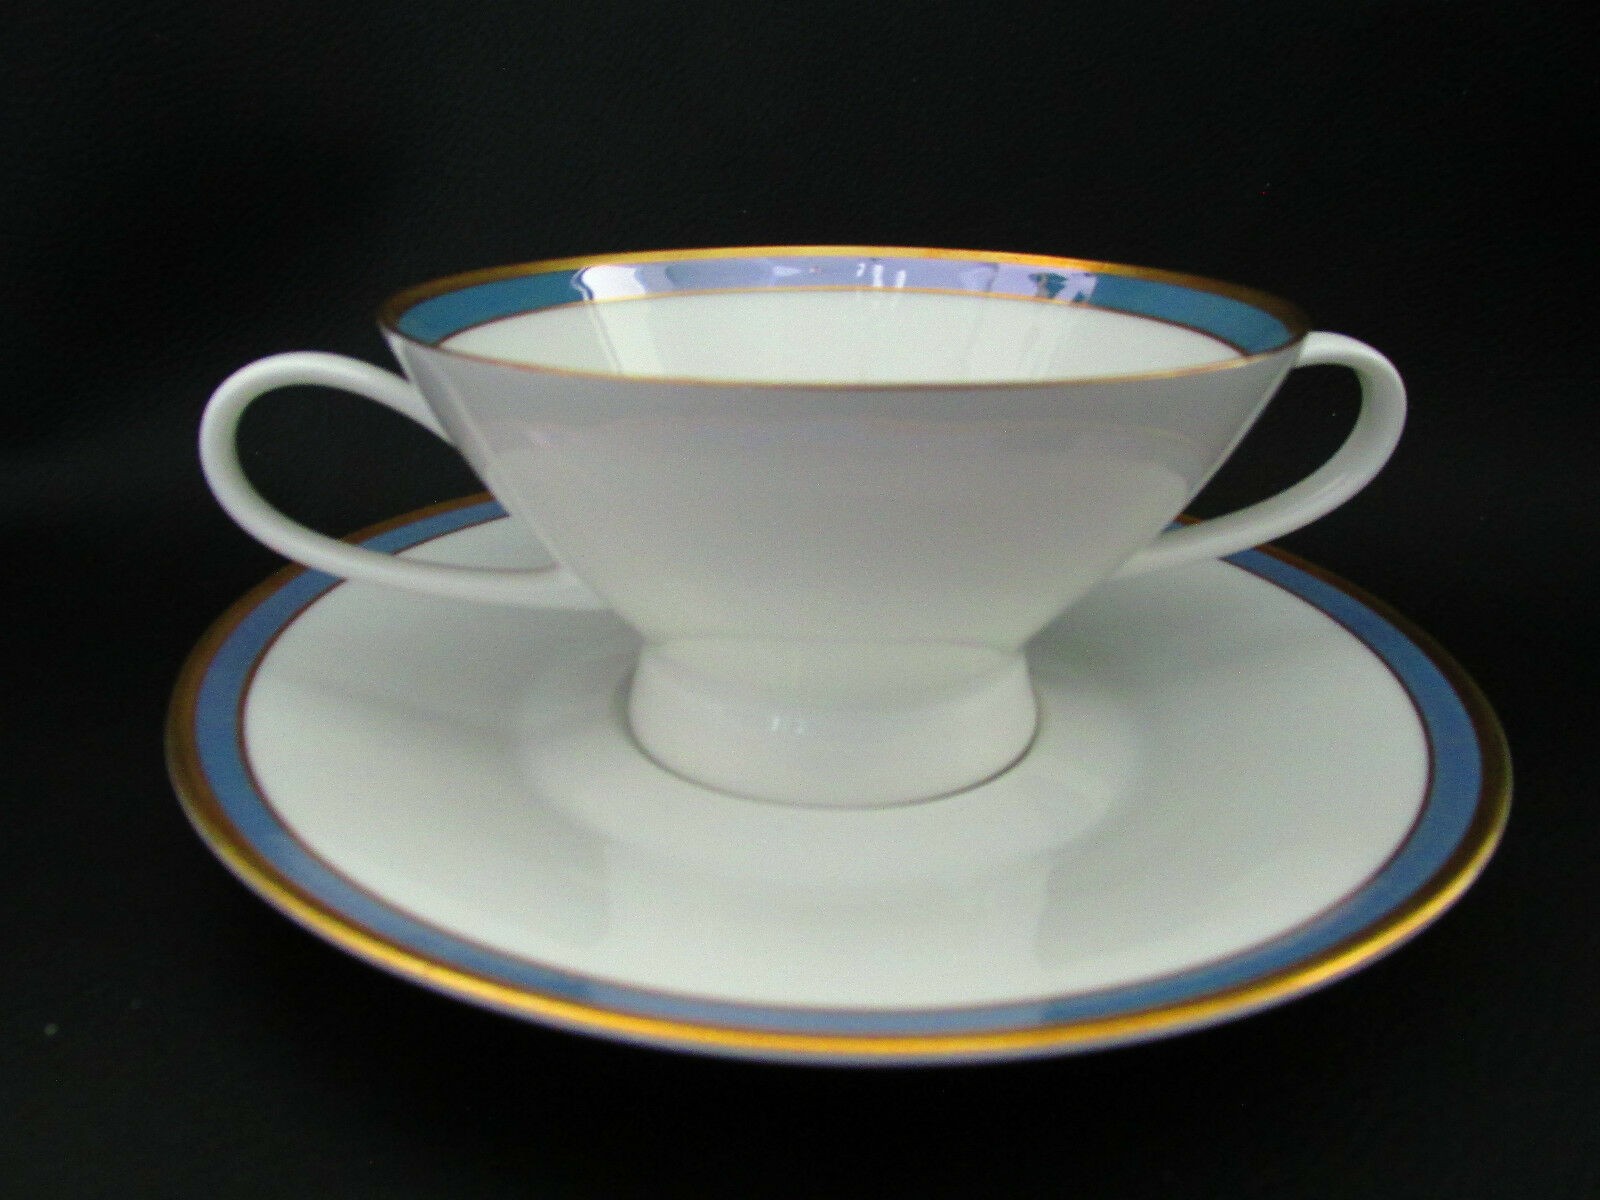 Primary image for Rosenthal Gala Blue CLASSIC ROSE Cream Soup Bowl Cup & Saucer Loewy Mid Century